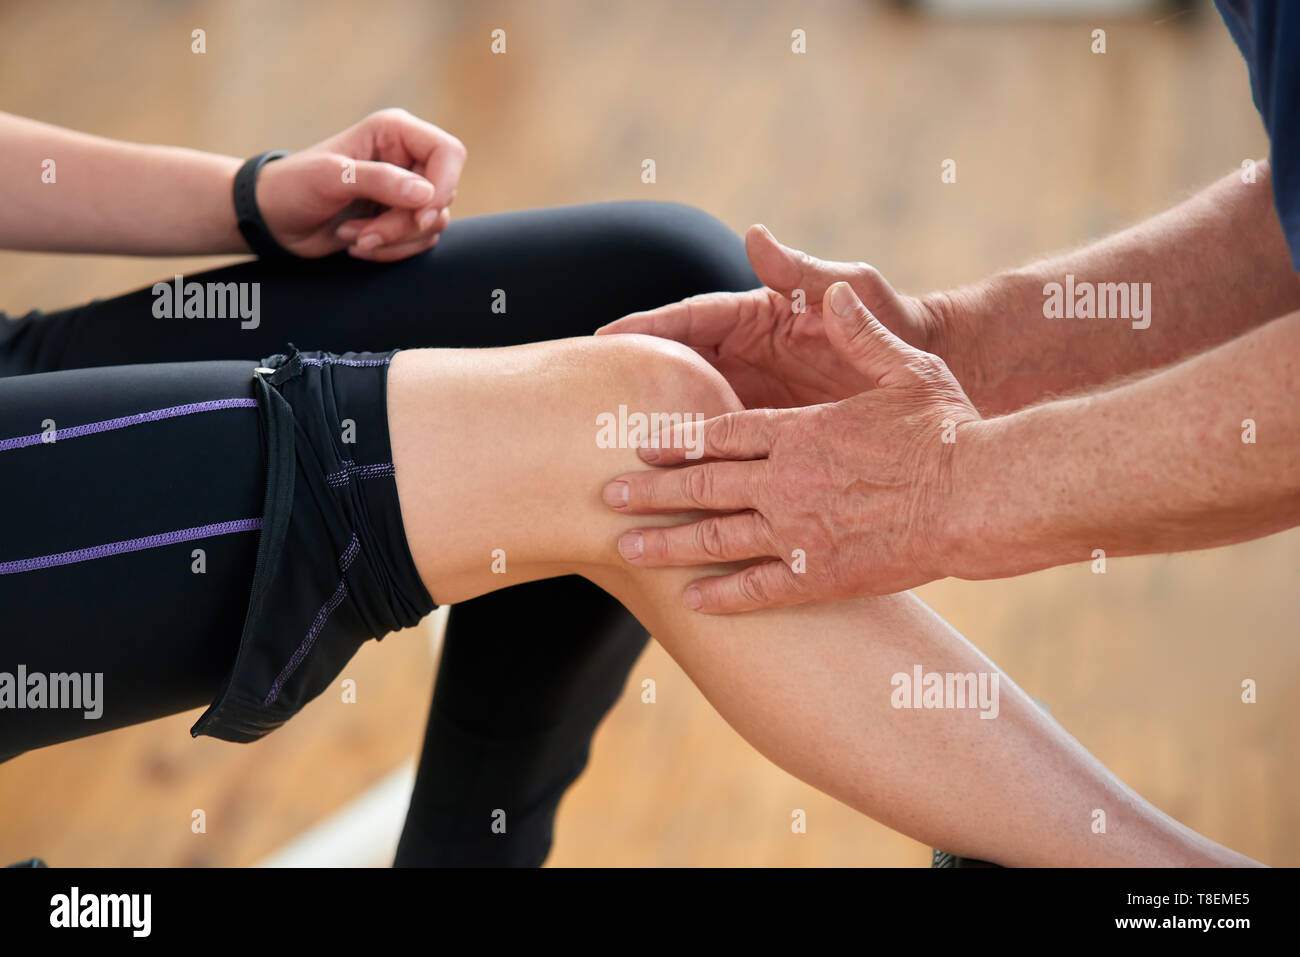 Muscle strain during workout. Male hands doing a massage to female knee at gym close up. Treating muscle soreness after sport exercise. - Stock Image